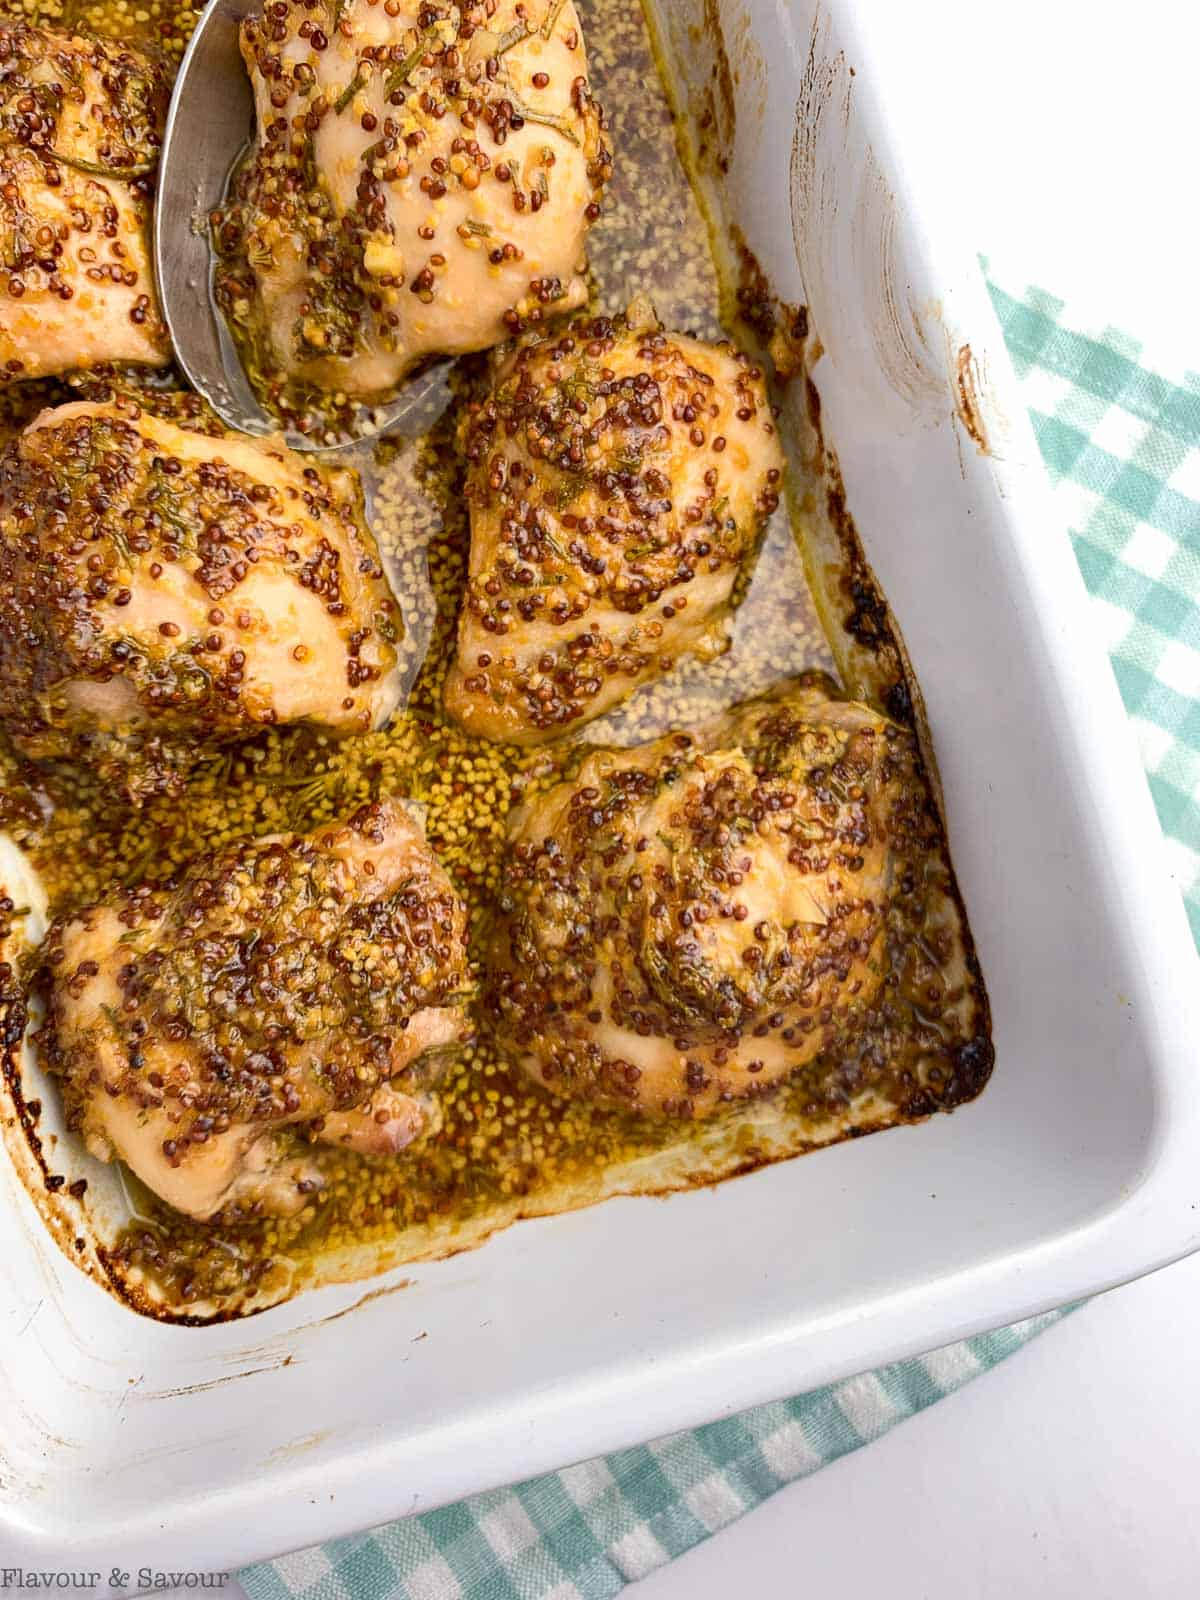 Maple Dijon Chicken Thighs baked in a casserole dish